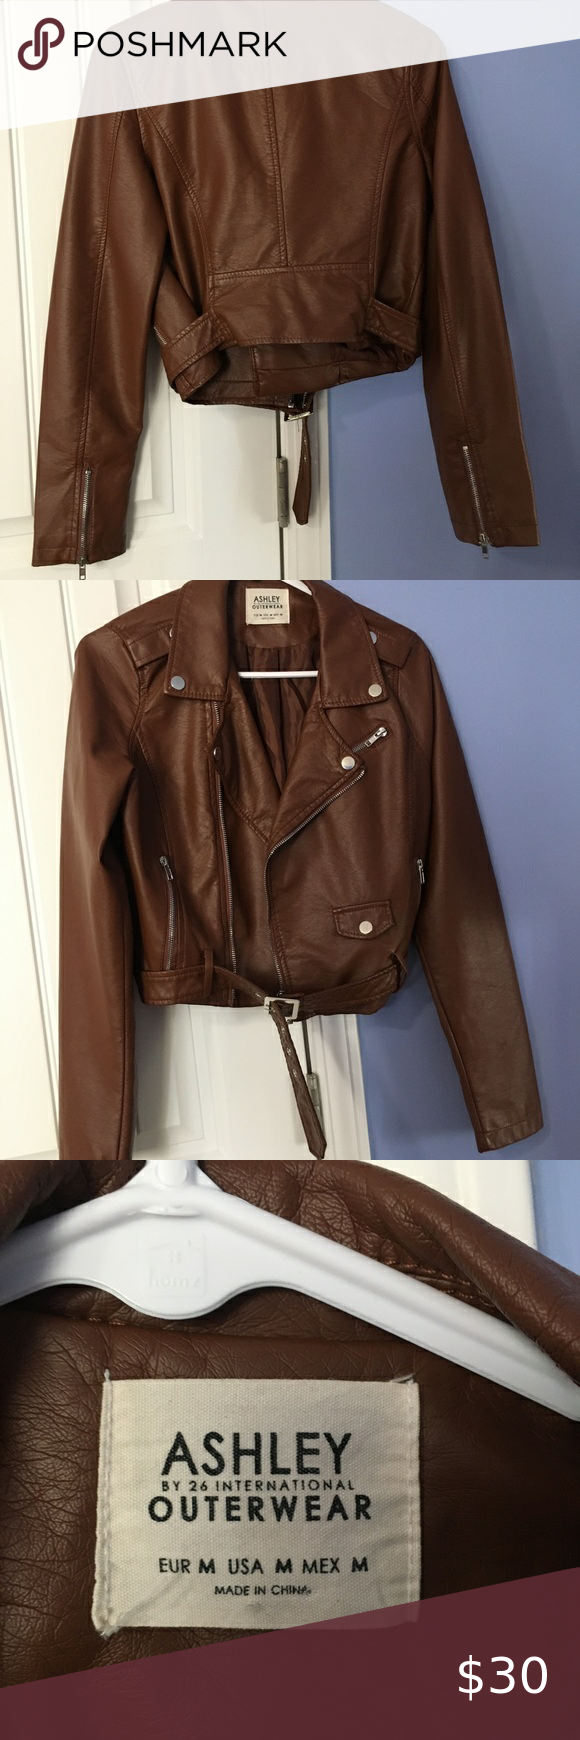 New Brown Leather Jacket With Metal Accents M Brown Leather Jacket Leather Jacket Jackets [ 1740 x 580 Pixel ]